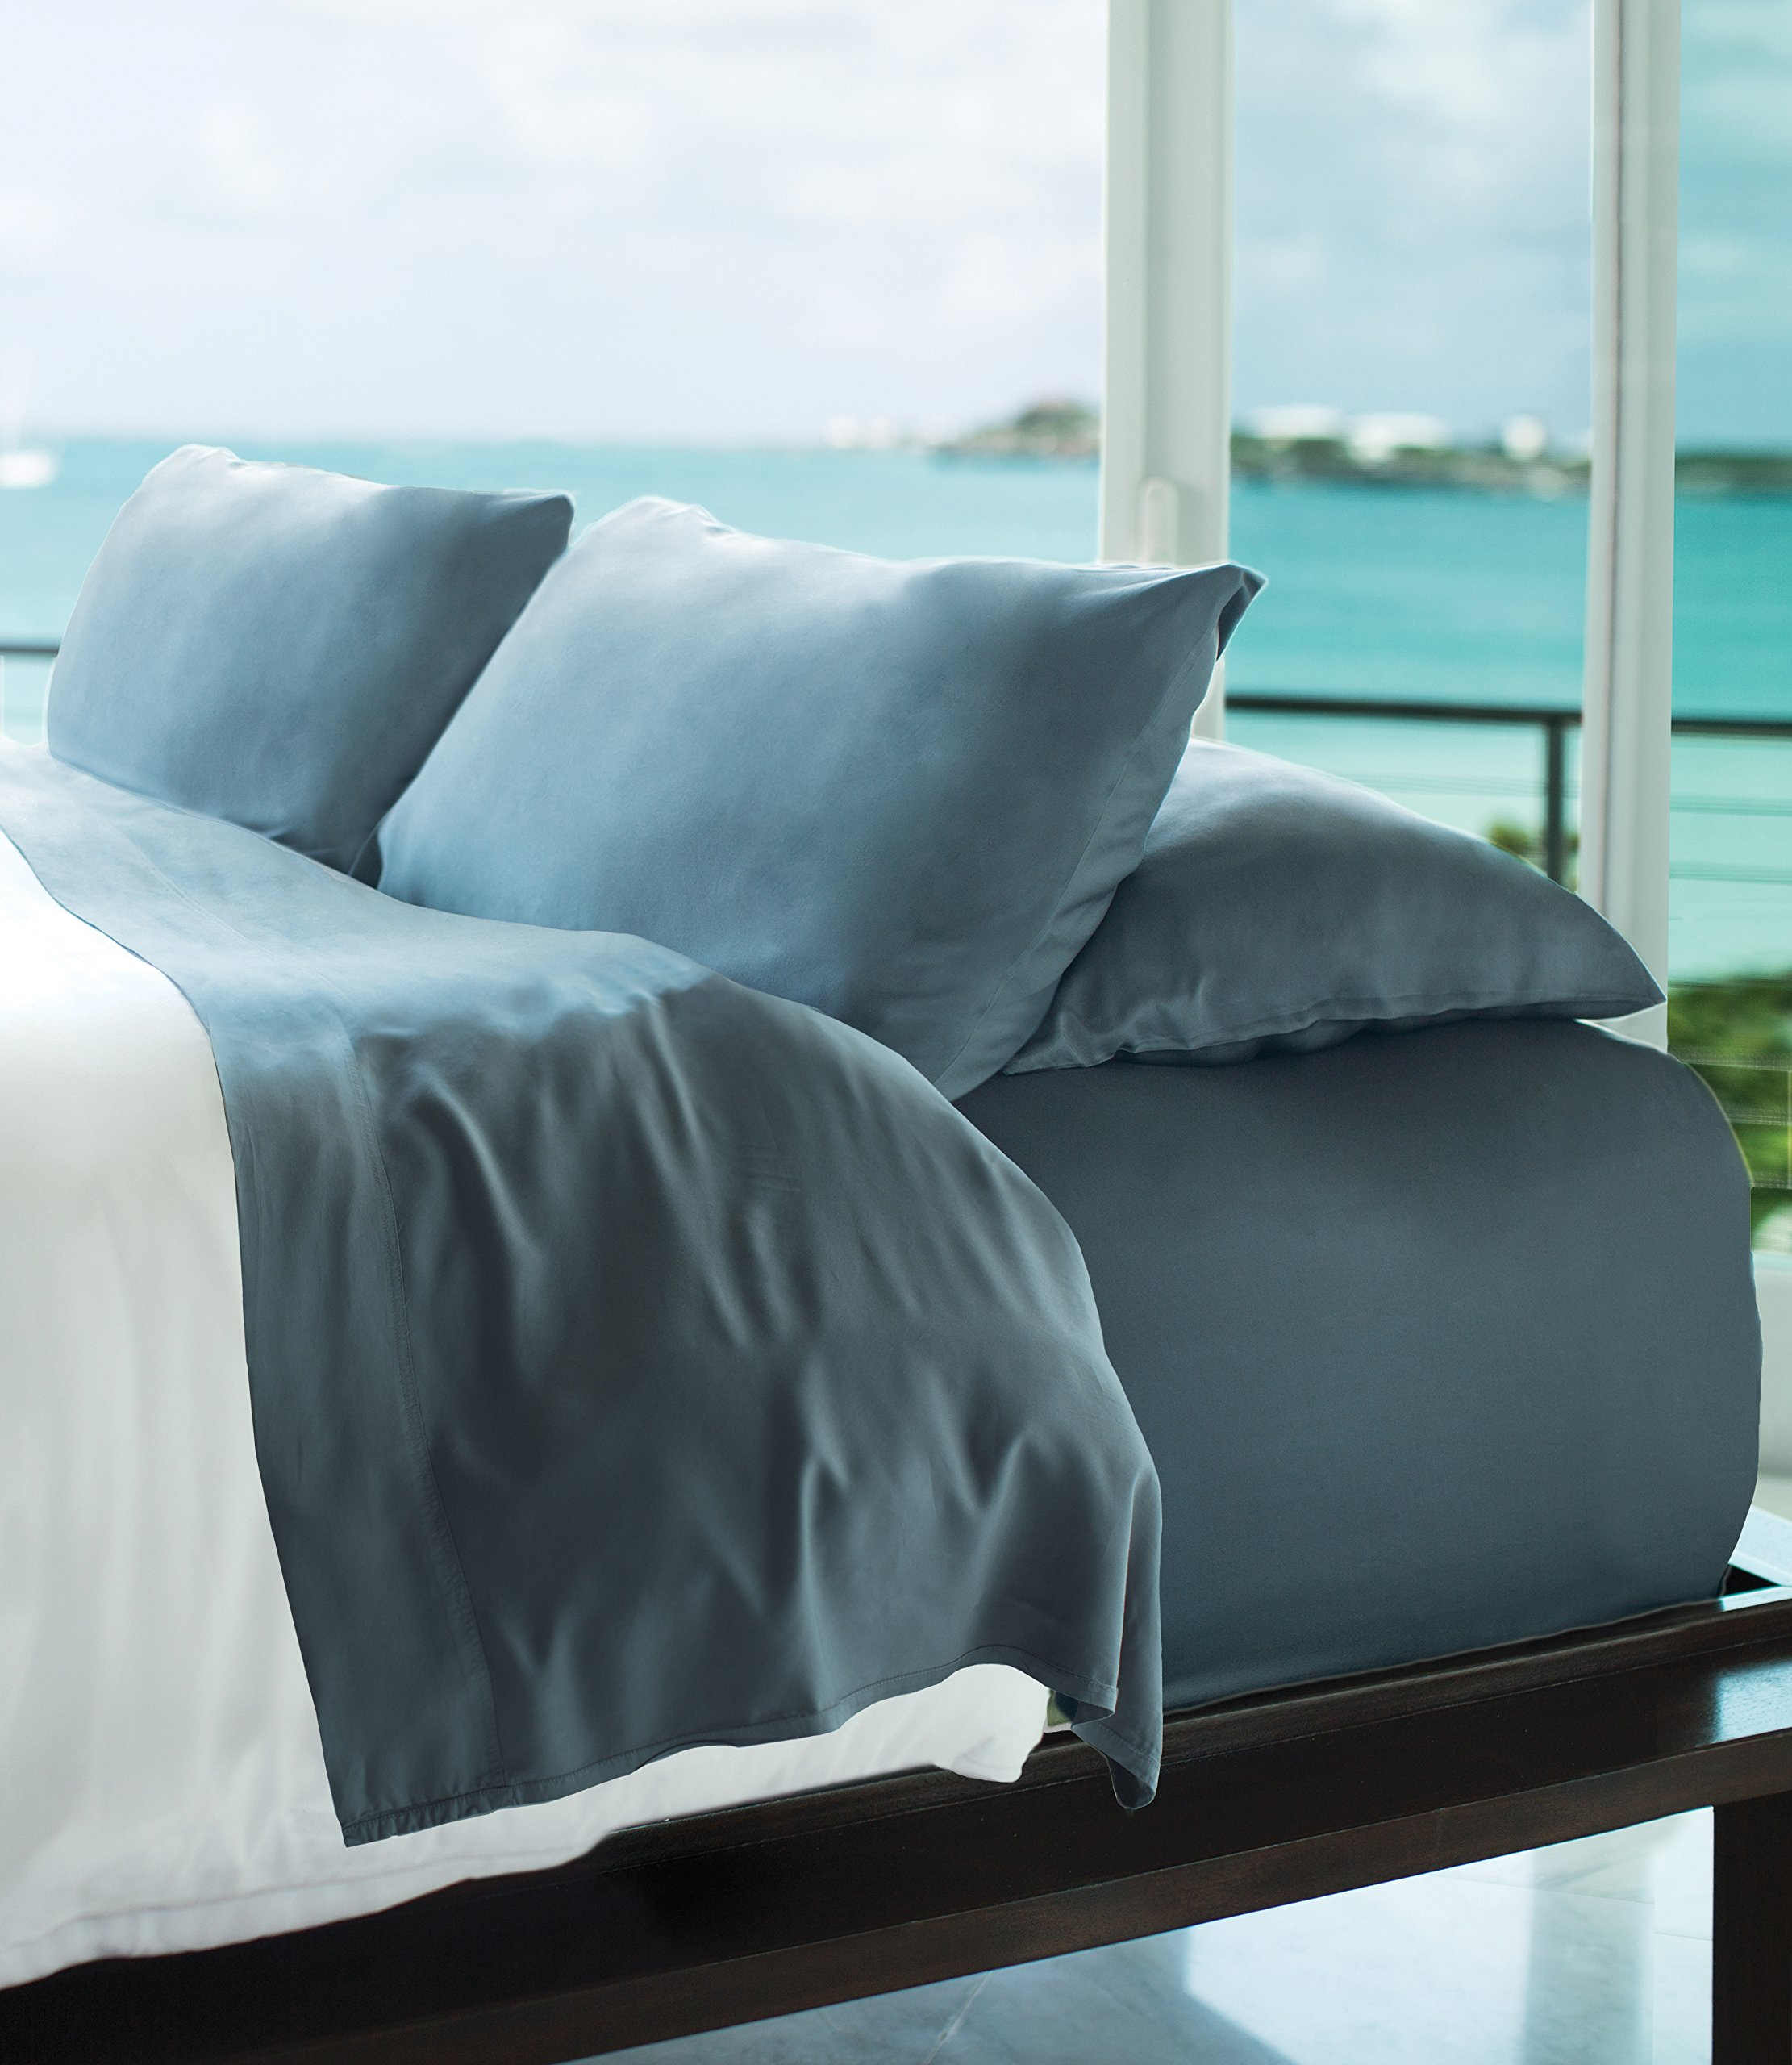 Resort Bamboo Sheets by Cariloha - 4 Piece bed Sheet Set - Luxurious Sateen Weave - 100% Viscose From Bamboo Bedding (Blue Lagoon, King)